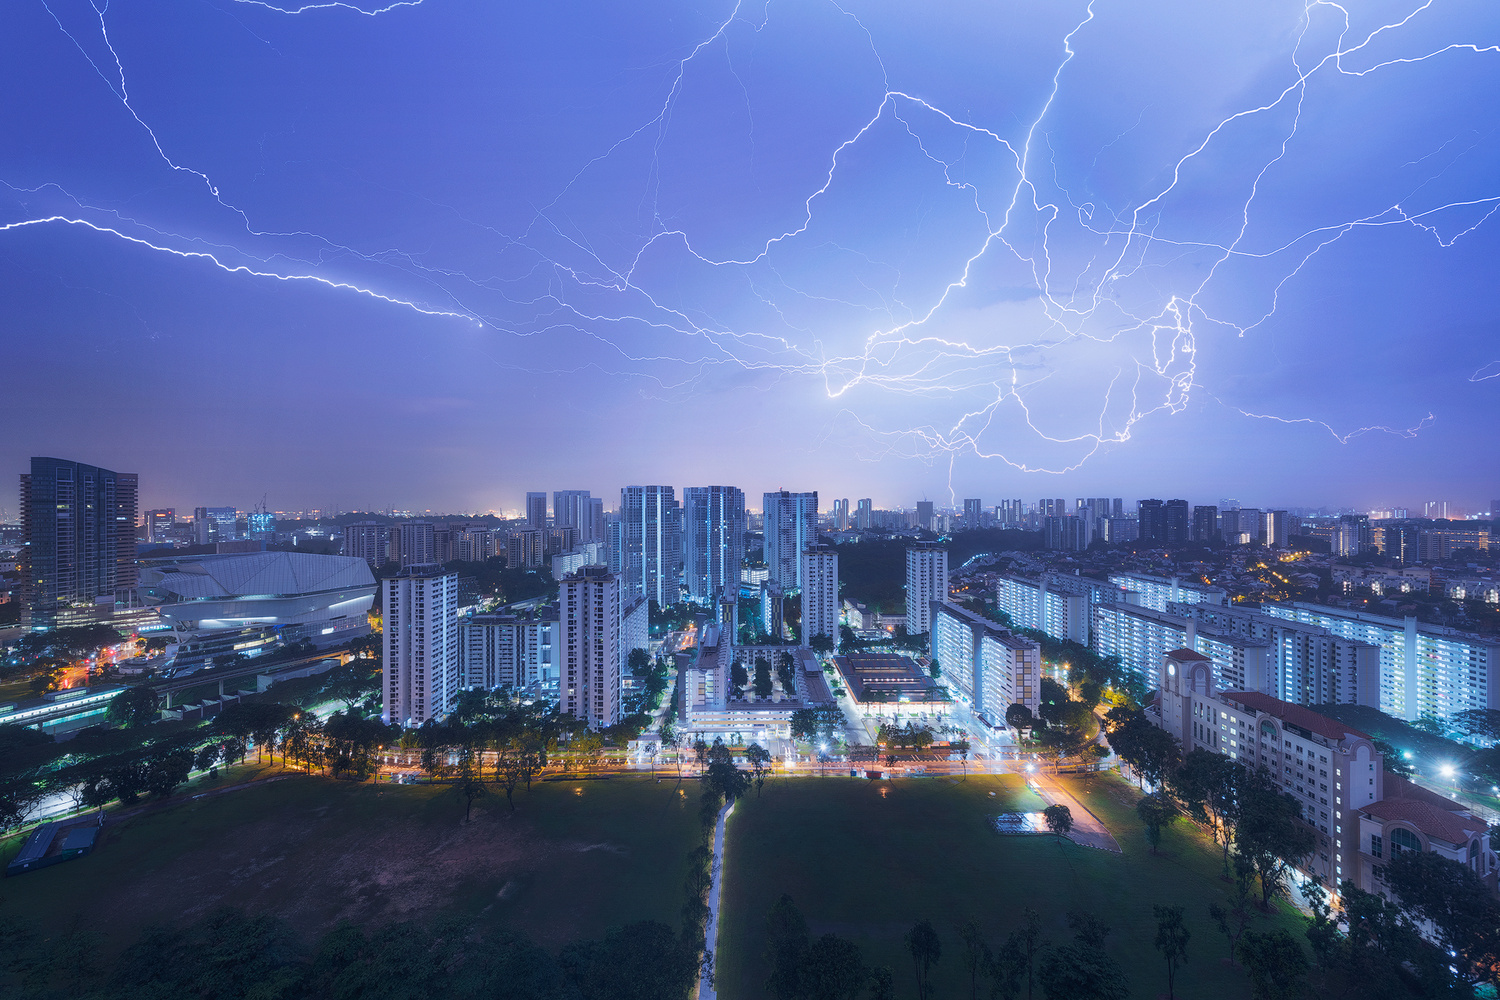 Monsoon Singapore by Terence Leezy